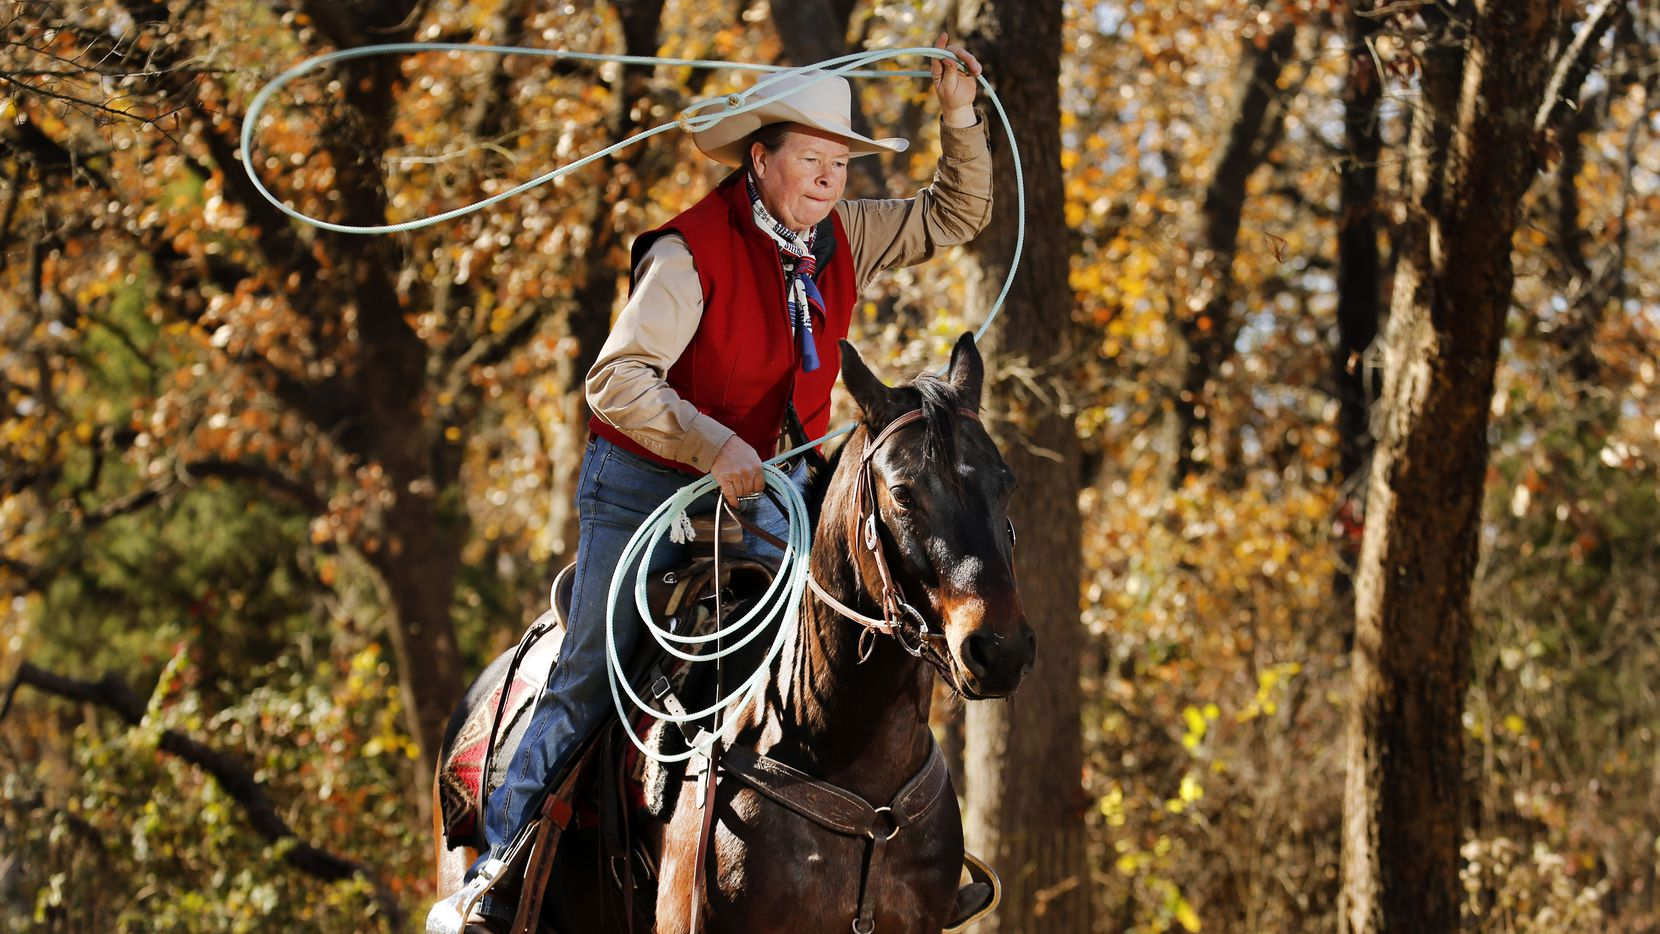 Teacher Gay Leigh Bingham retired this fall rather than face the health risks and disruptions of the coronavirus. She was practicing roping on her horse, Mikey, at her Broken Bow Ranch in Seagoville, where she offers trail rides and riding lessons to supplement her retirement income.